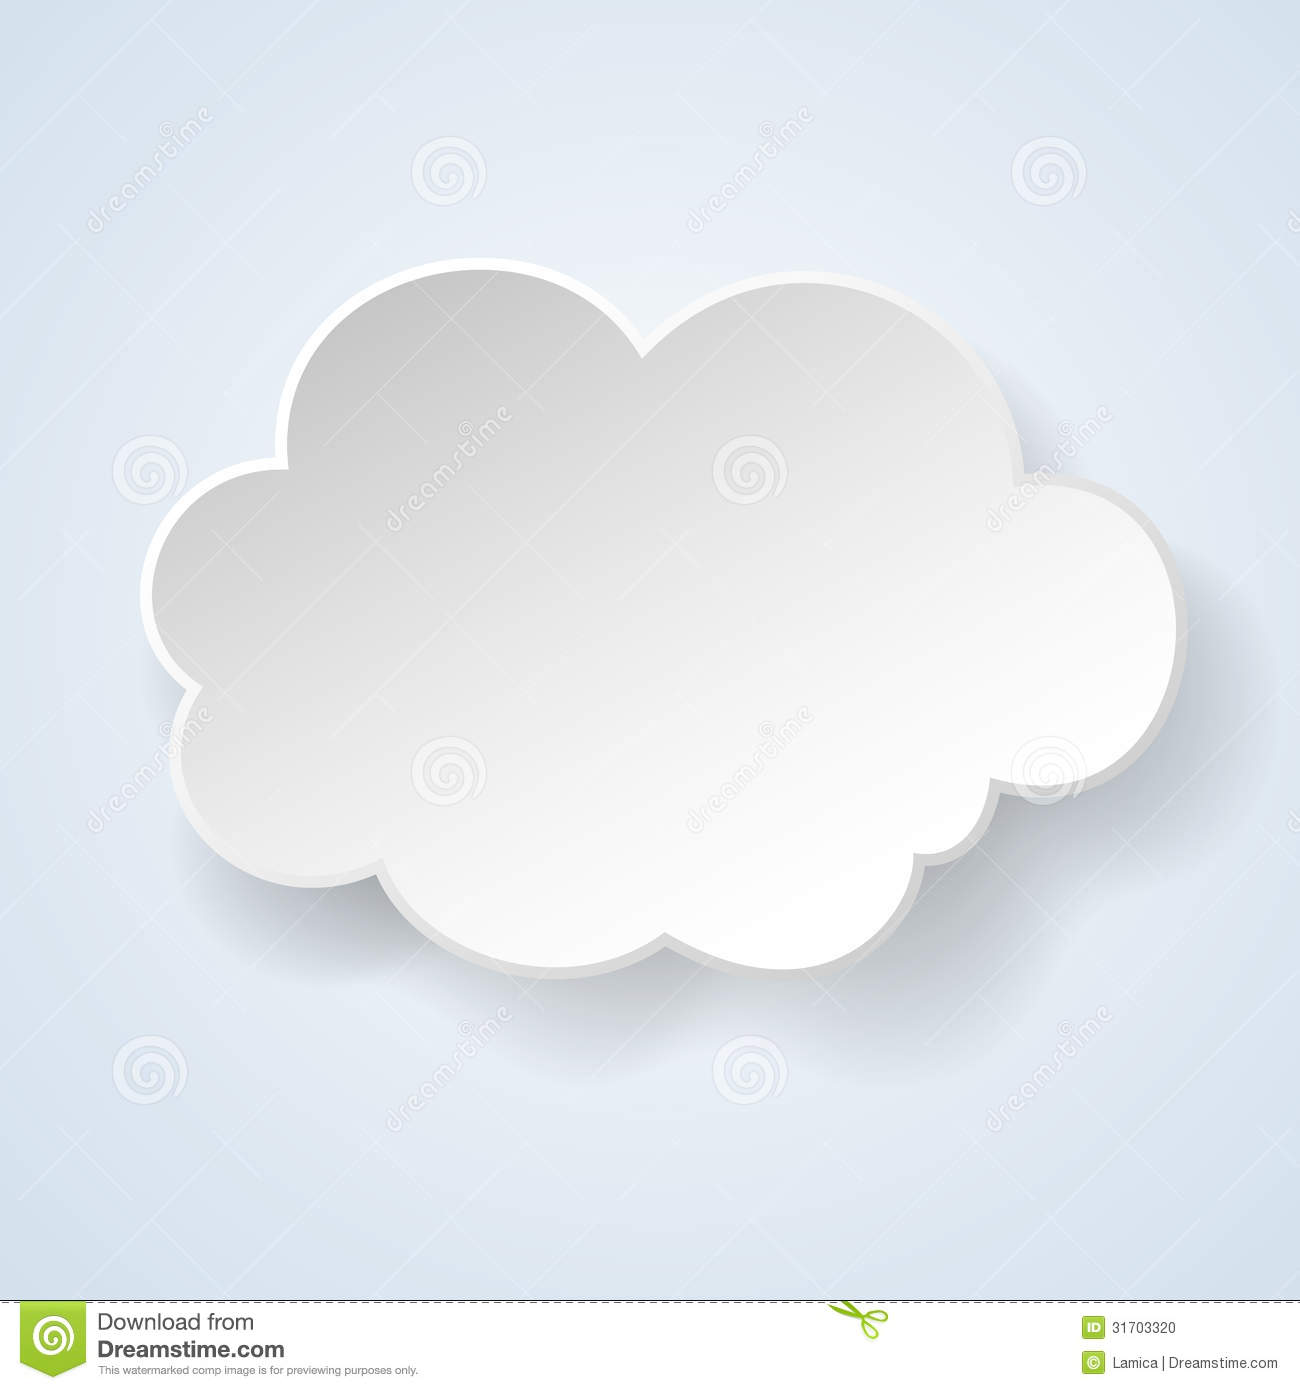 Abstract Paper Speech Bubble In The Form Of A Cloud On Light Blu ...